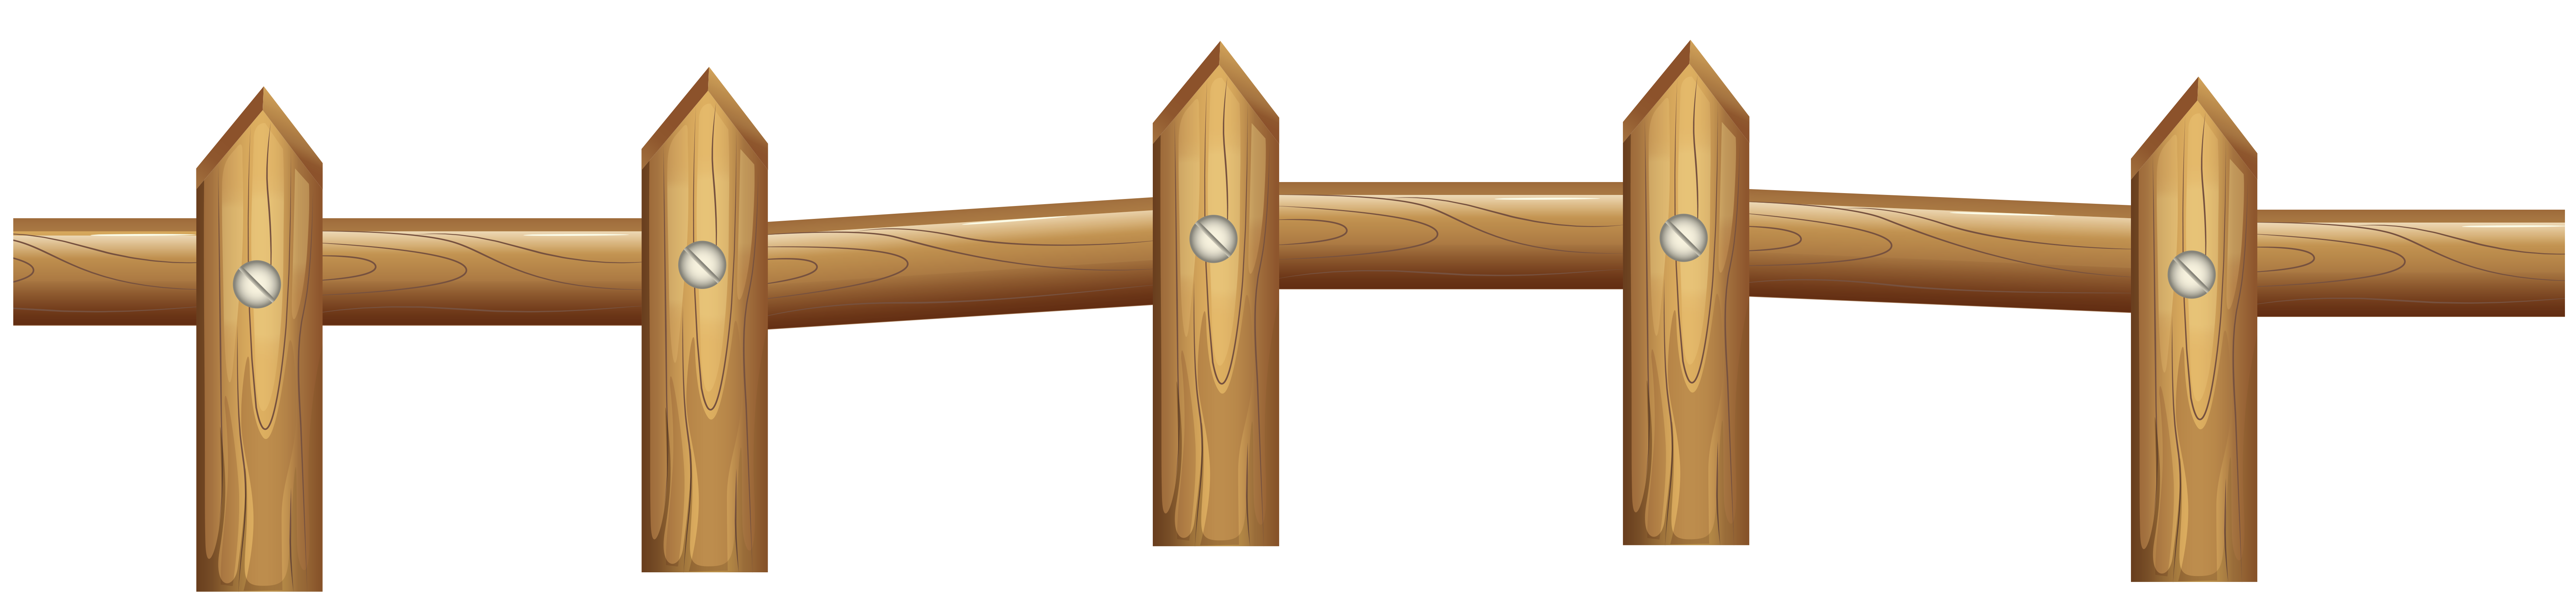 Free Wood Fence Cliparts, Download Free Clip Art, Free Clip.